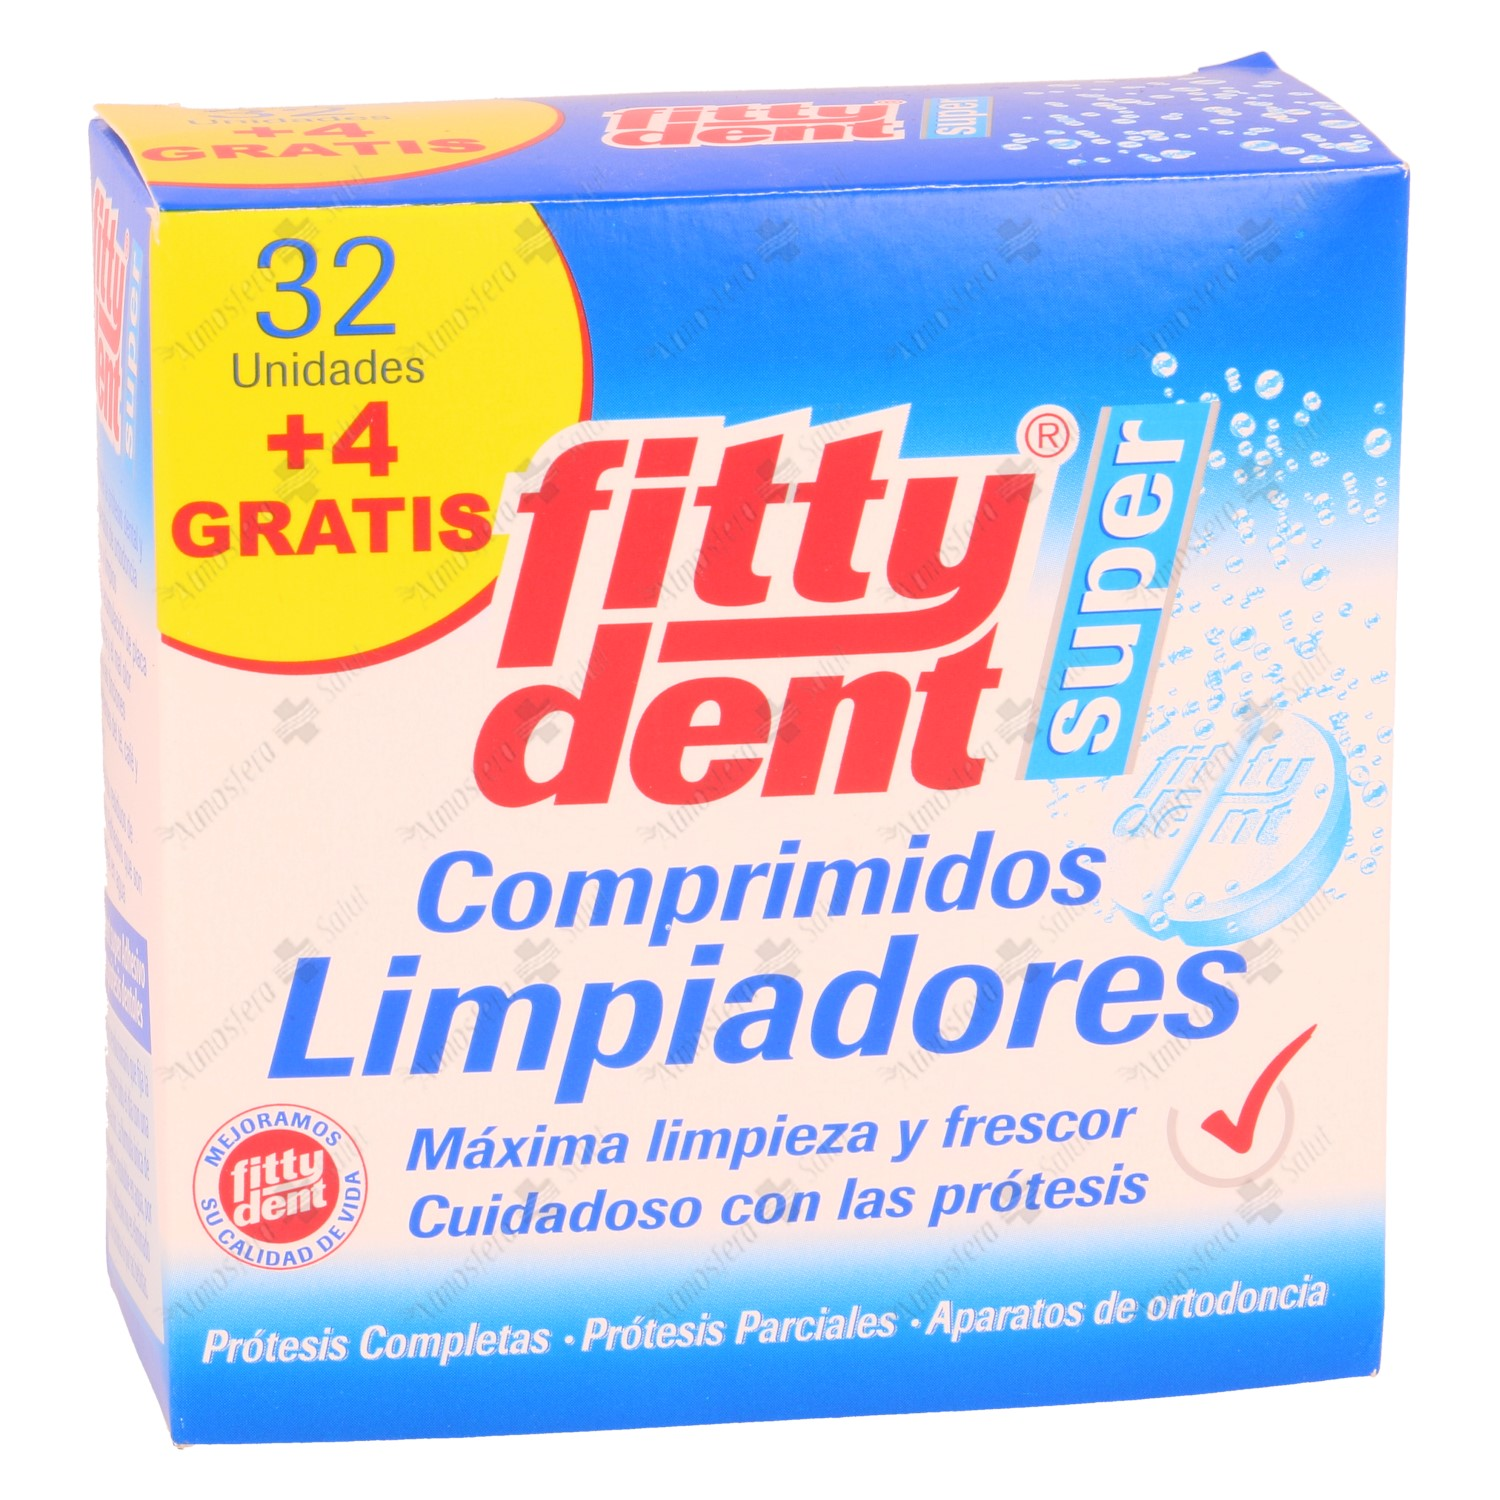 FITTYDENT SUPER COMP LIMPIEZA PROT. DENTAL 32+4- 182512 -  PHB